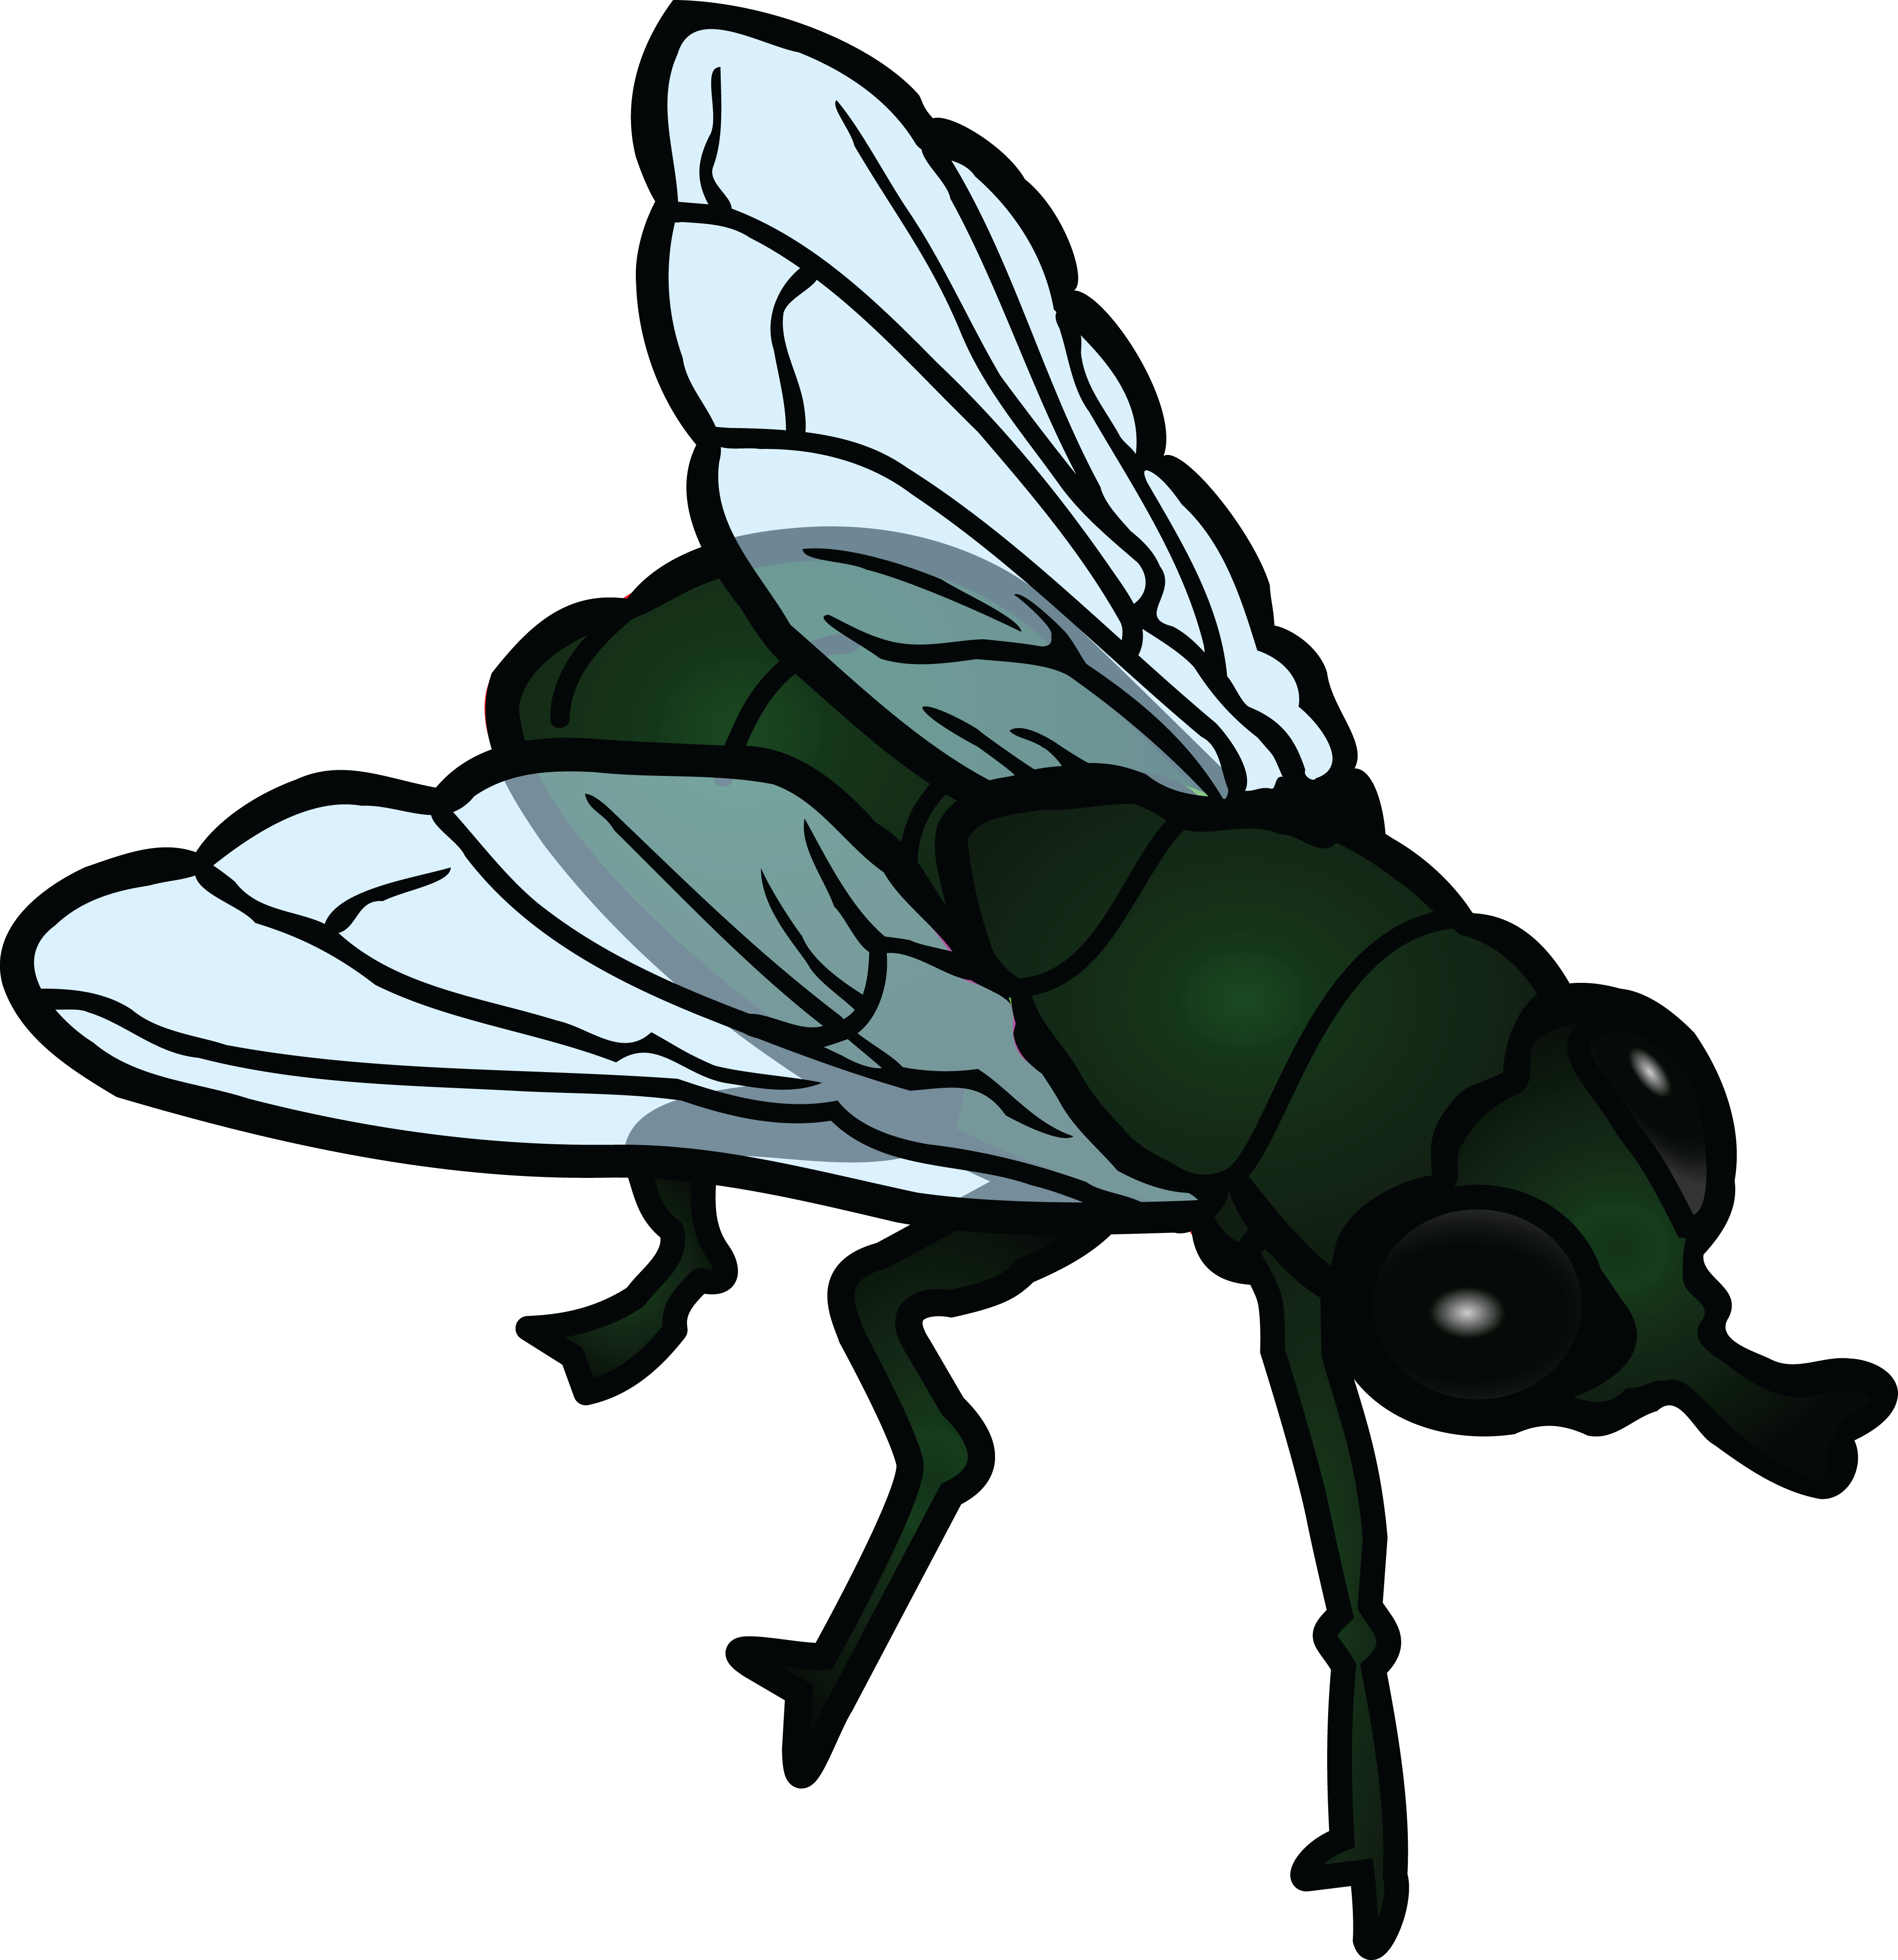 Free Clipart Of A fly #00011377 .